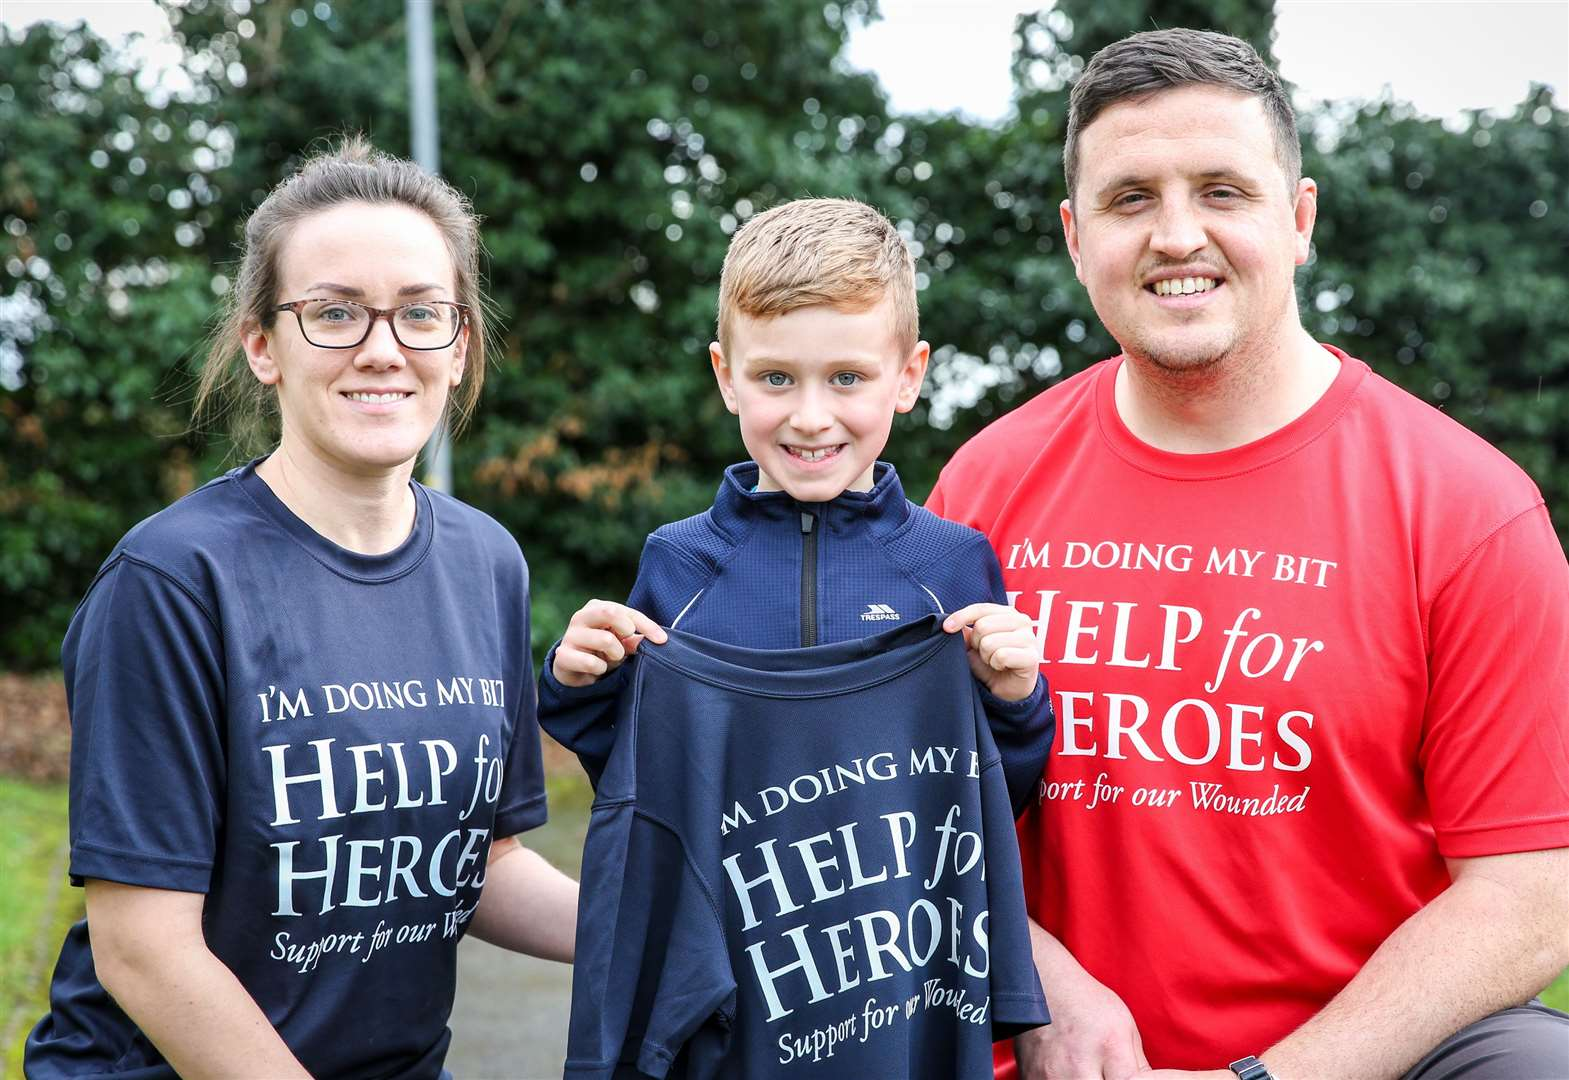 Boy's mission to help 'broken soldiers'